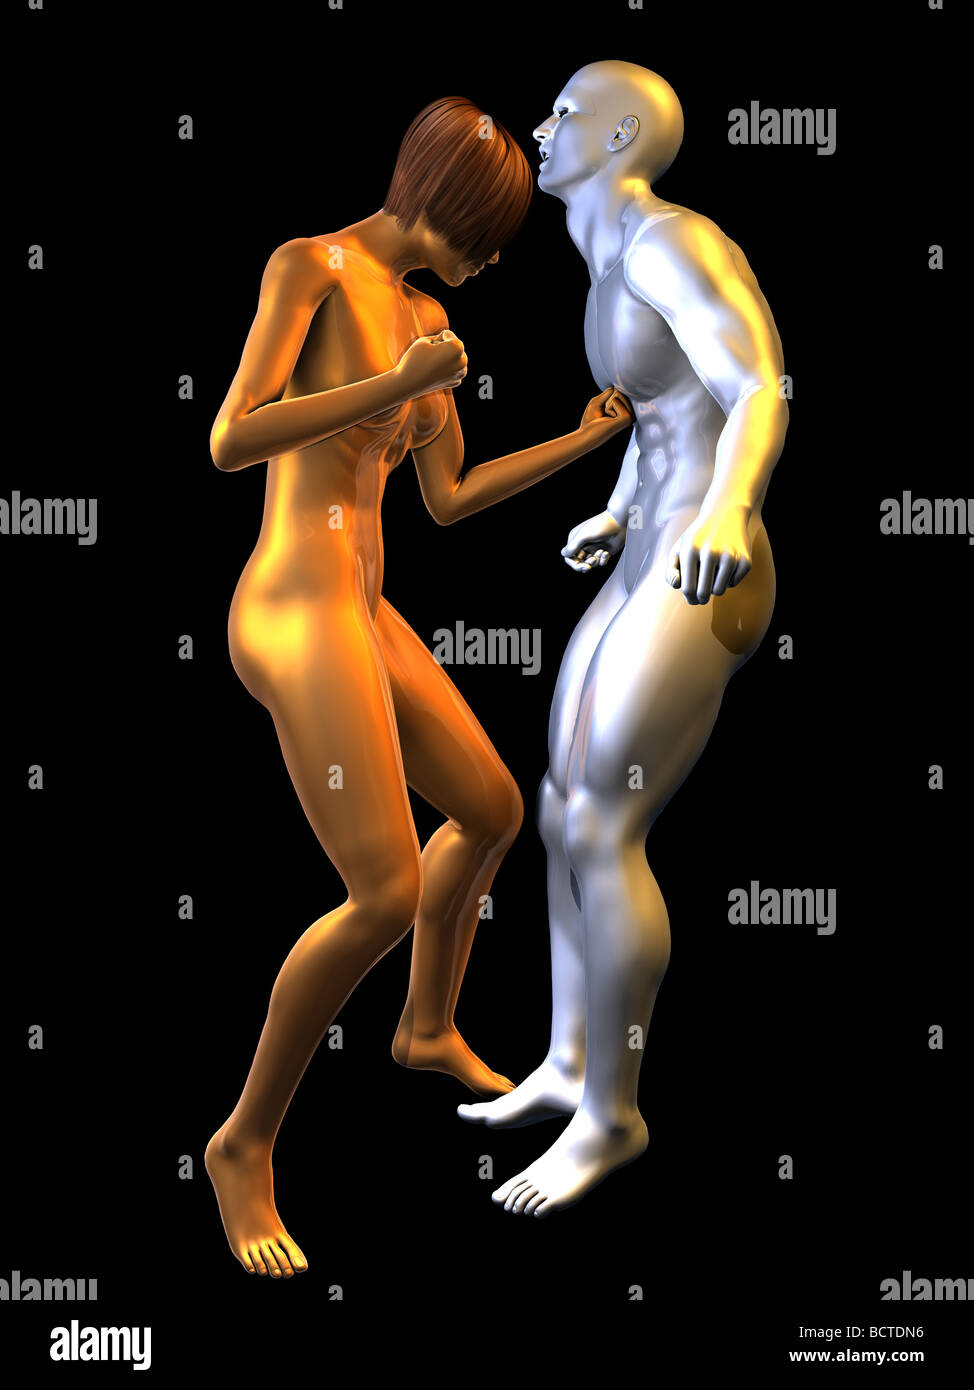 The battle between man and woman takes on a physical form in this action scene between 2 metallic figures. She lands - Stock Image